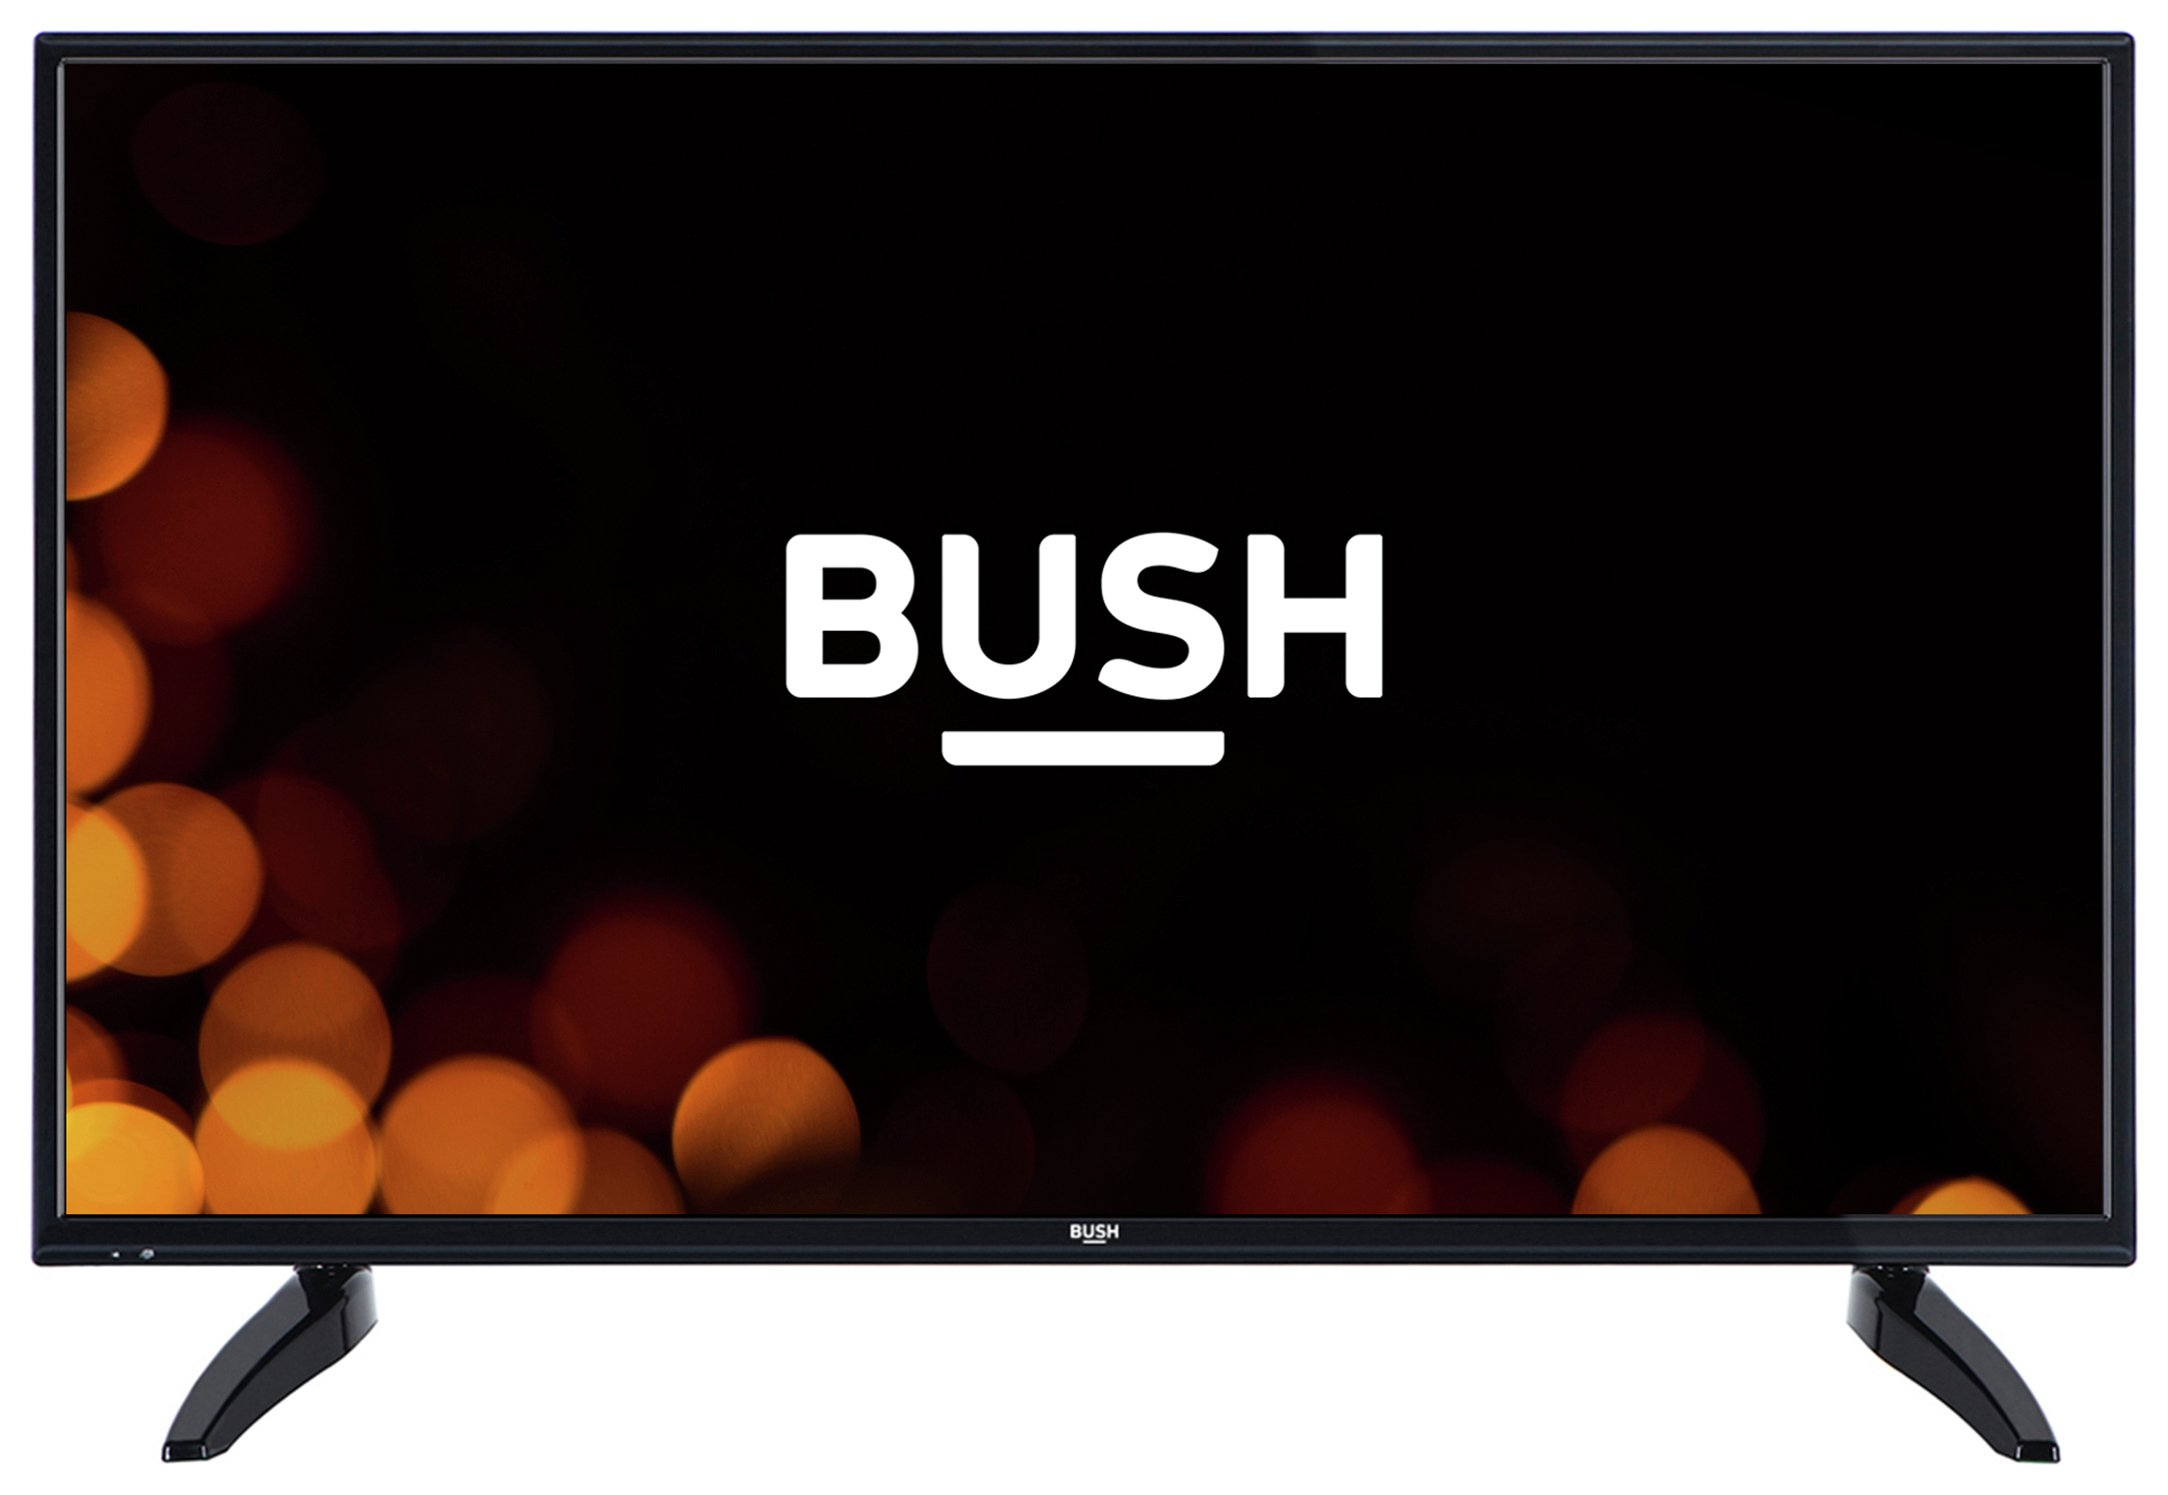 Image of Bush 49 inch Full HD Freeview LED TV.